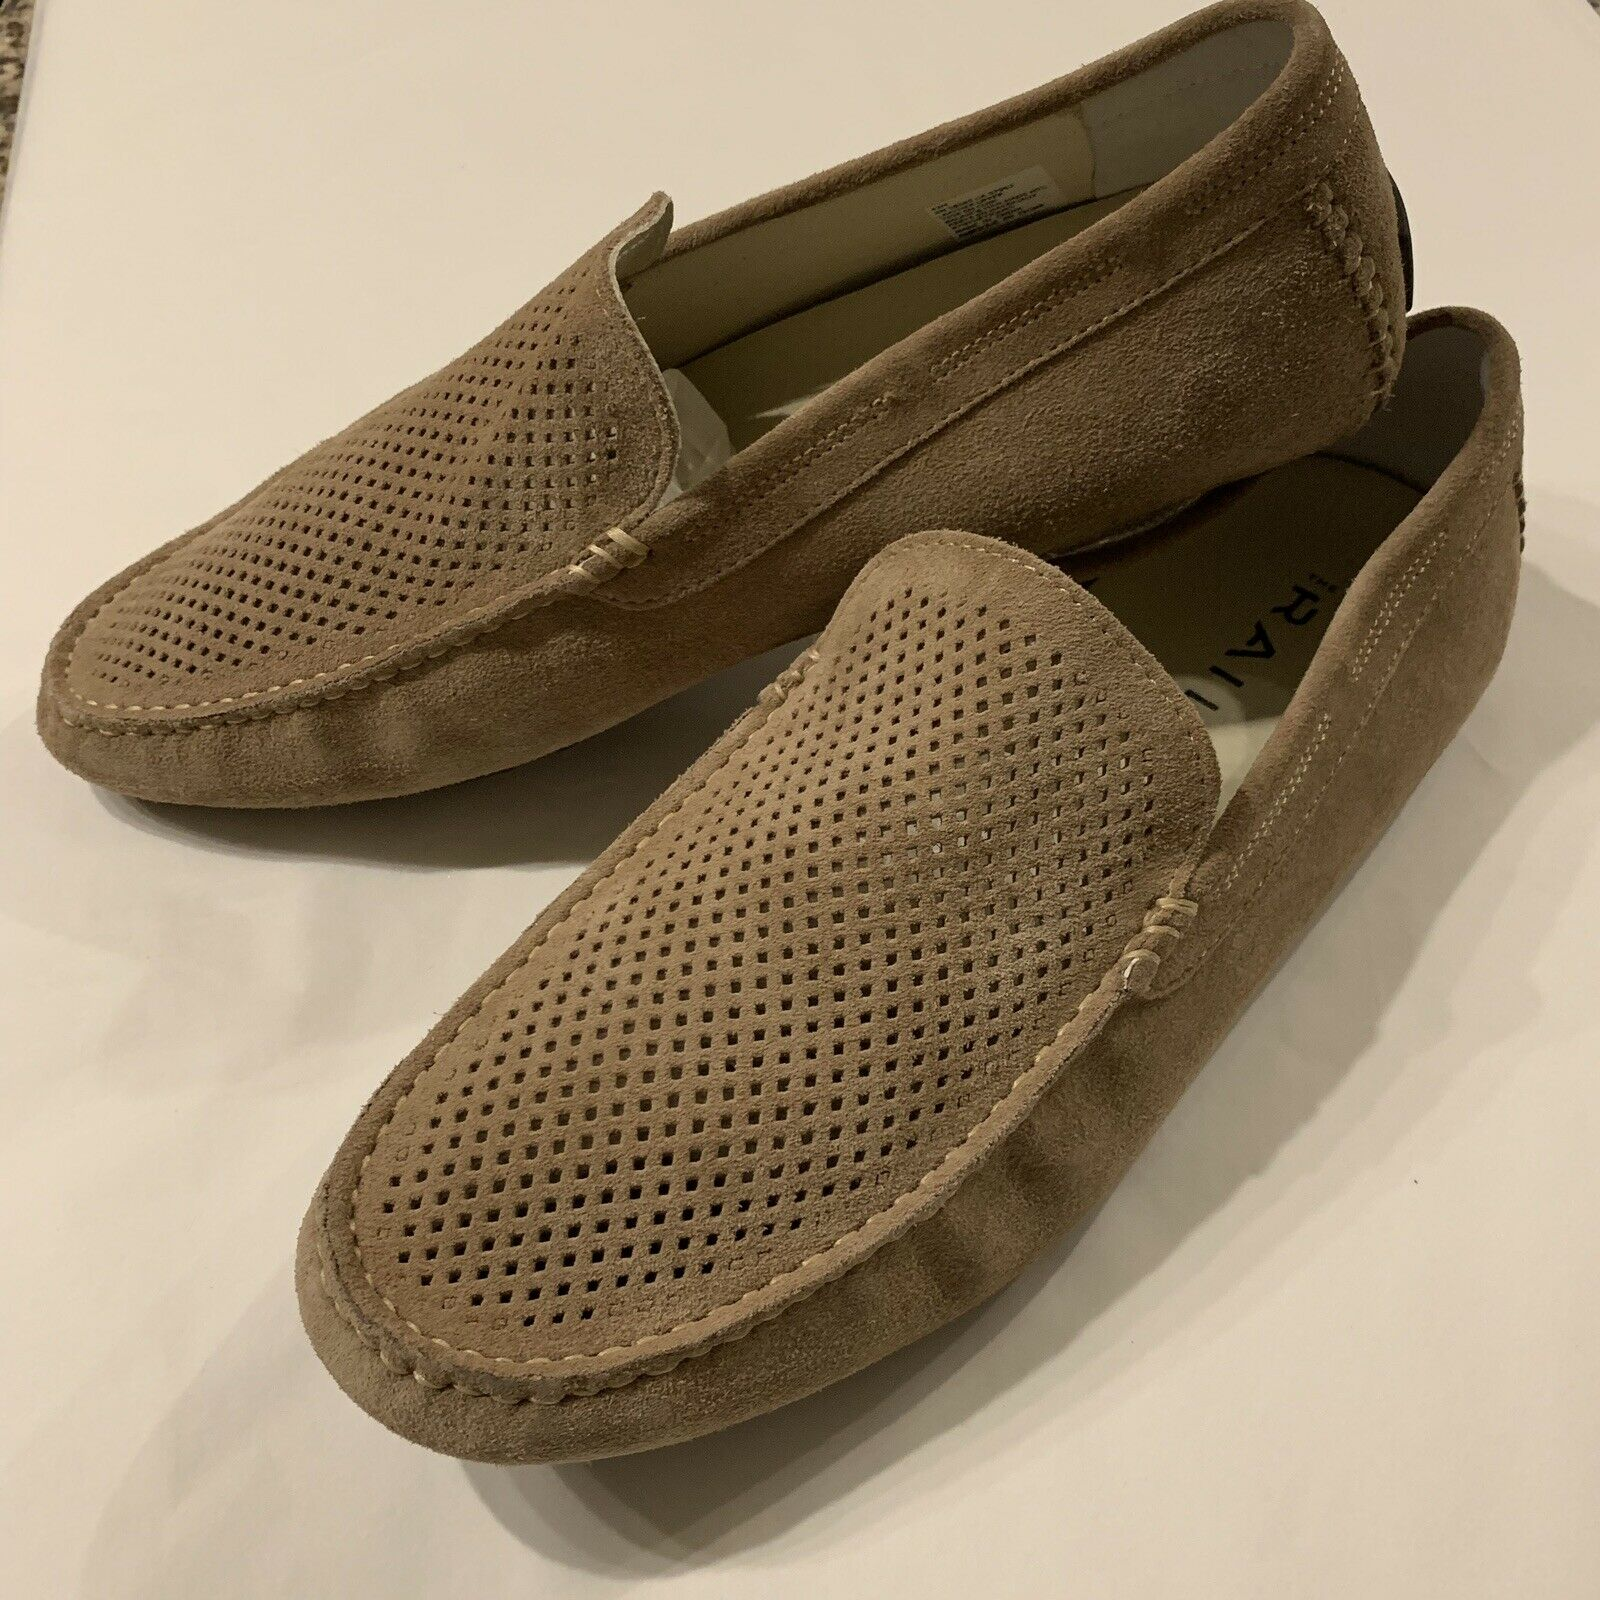 The Rail Morgan Men's Suede Driving Slip On Casual Loafers Size 10-11 EUR 43M